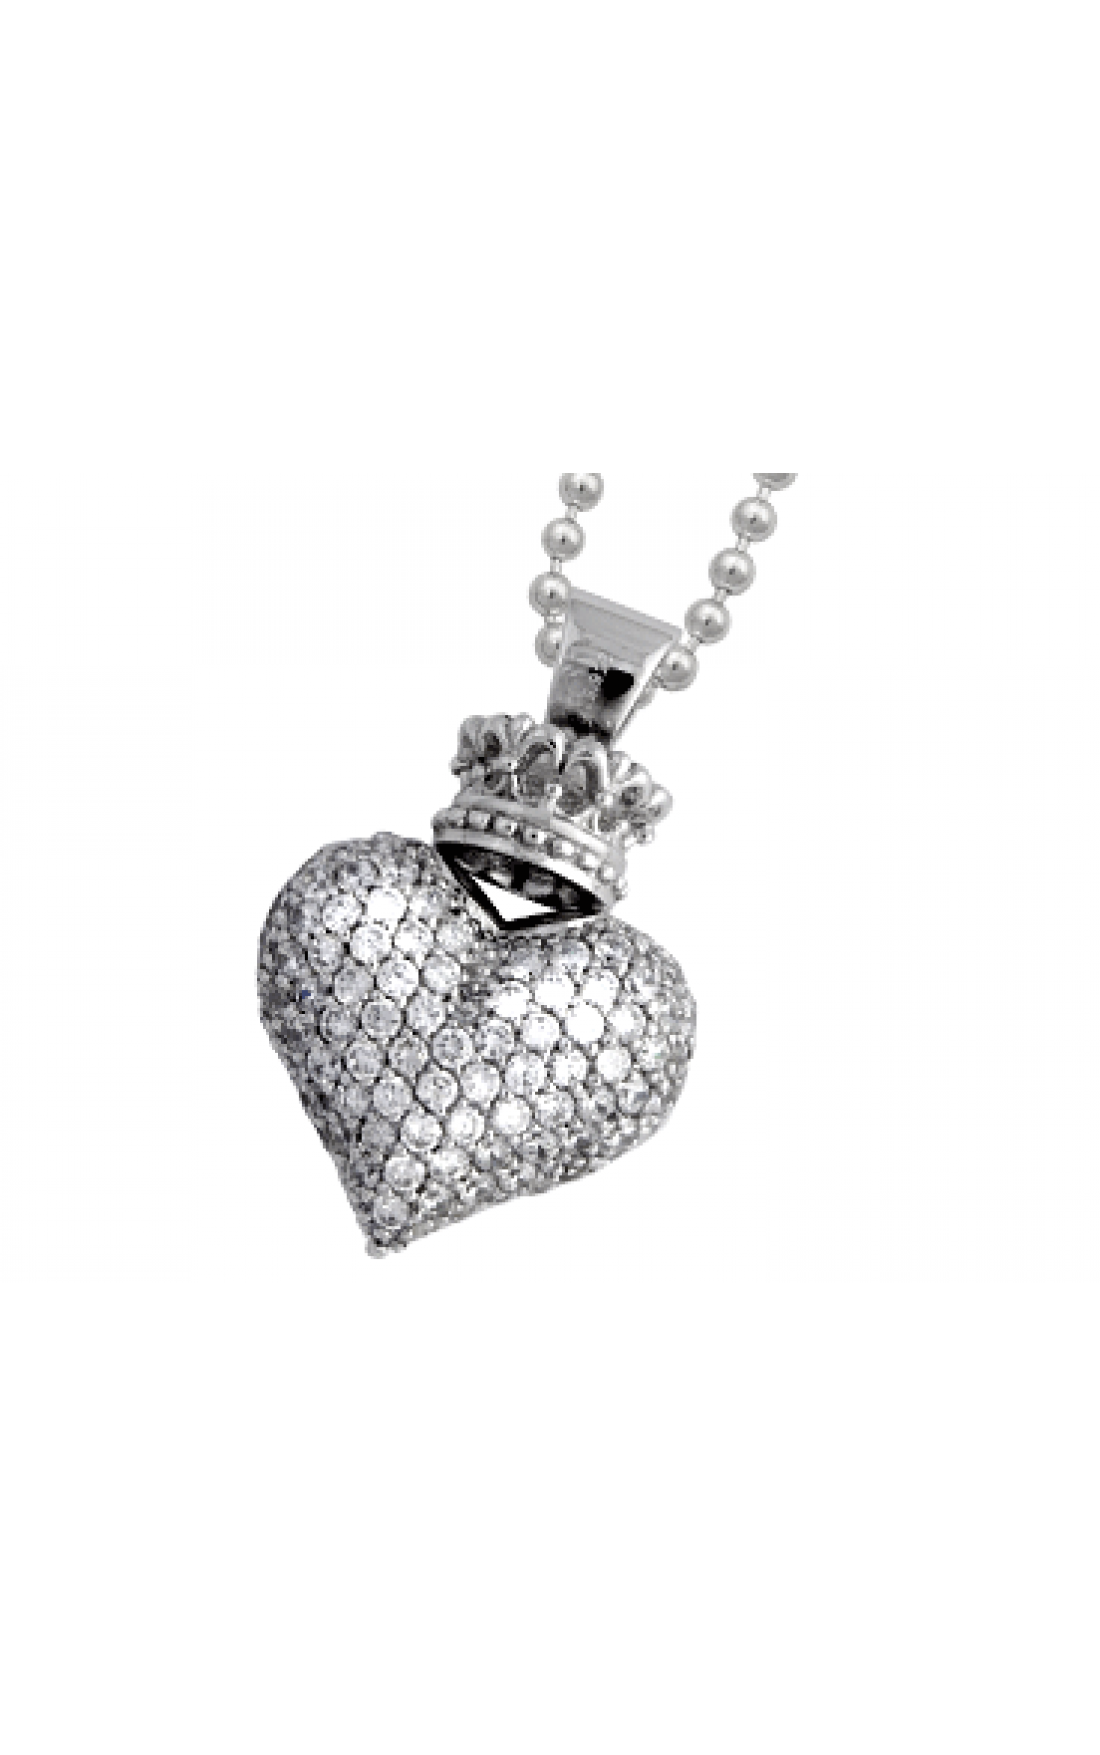 Queen-Baby-Jewellery-Q10-9072-Silver-3D-White-Crystal-Crowned-Heart-Chain-Boudi-UK